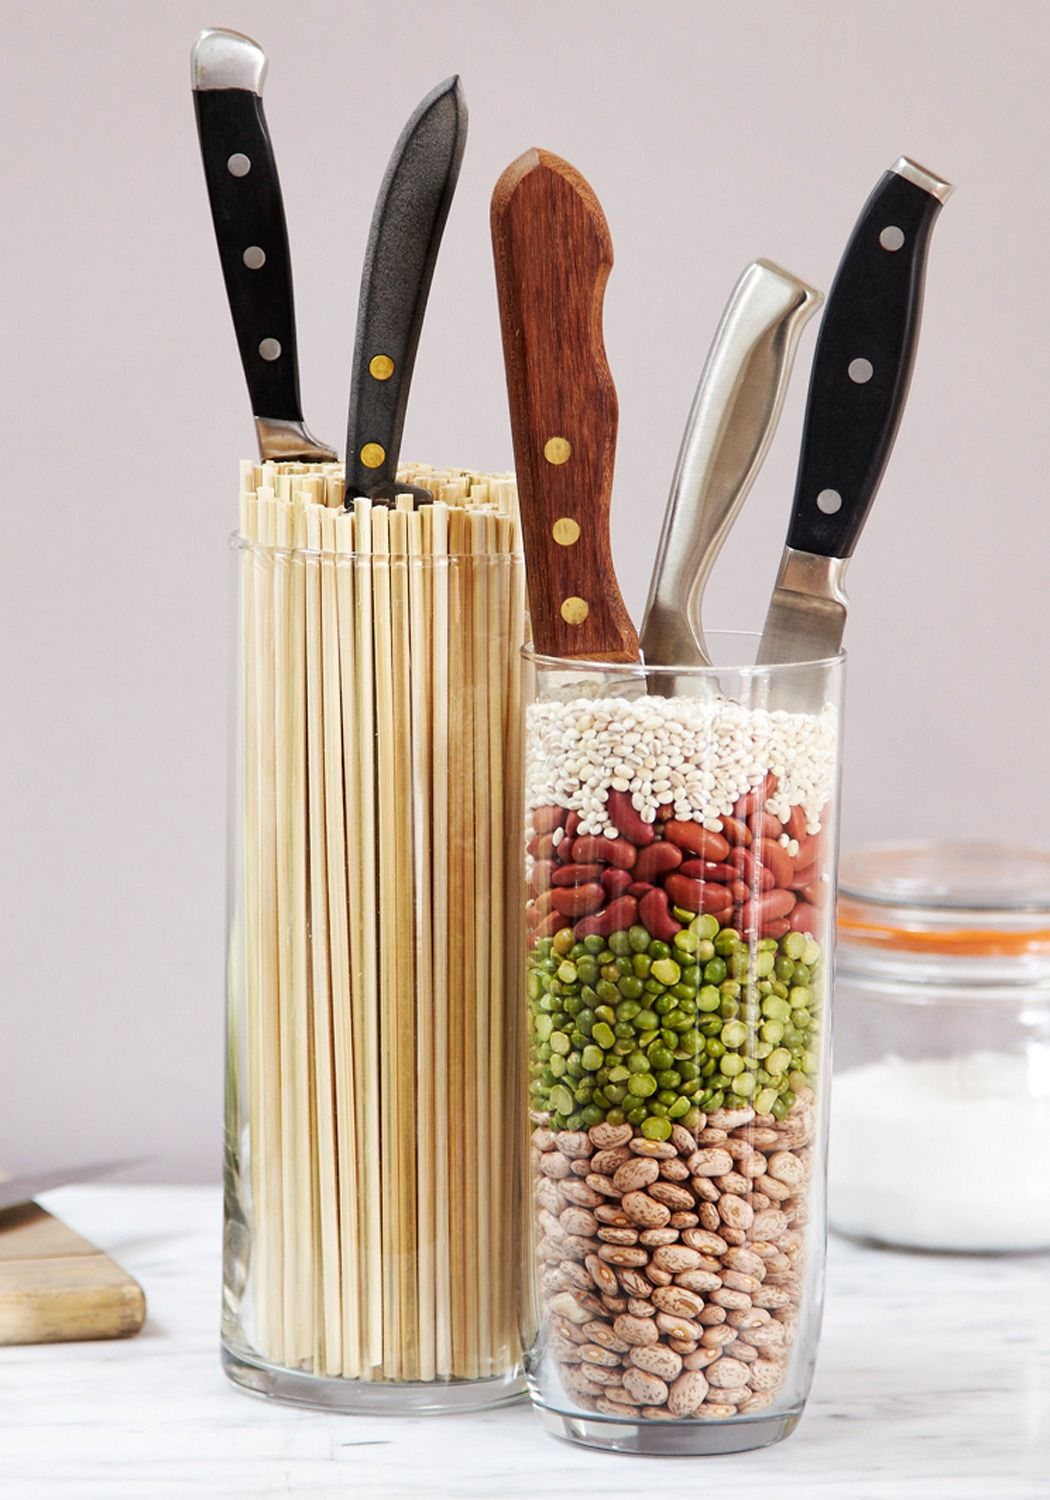 Check Out These 3 Diy Knife Blocks For Your Kitchen Kitchen